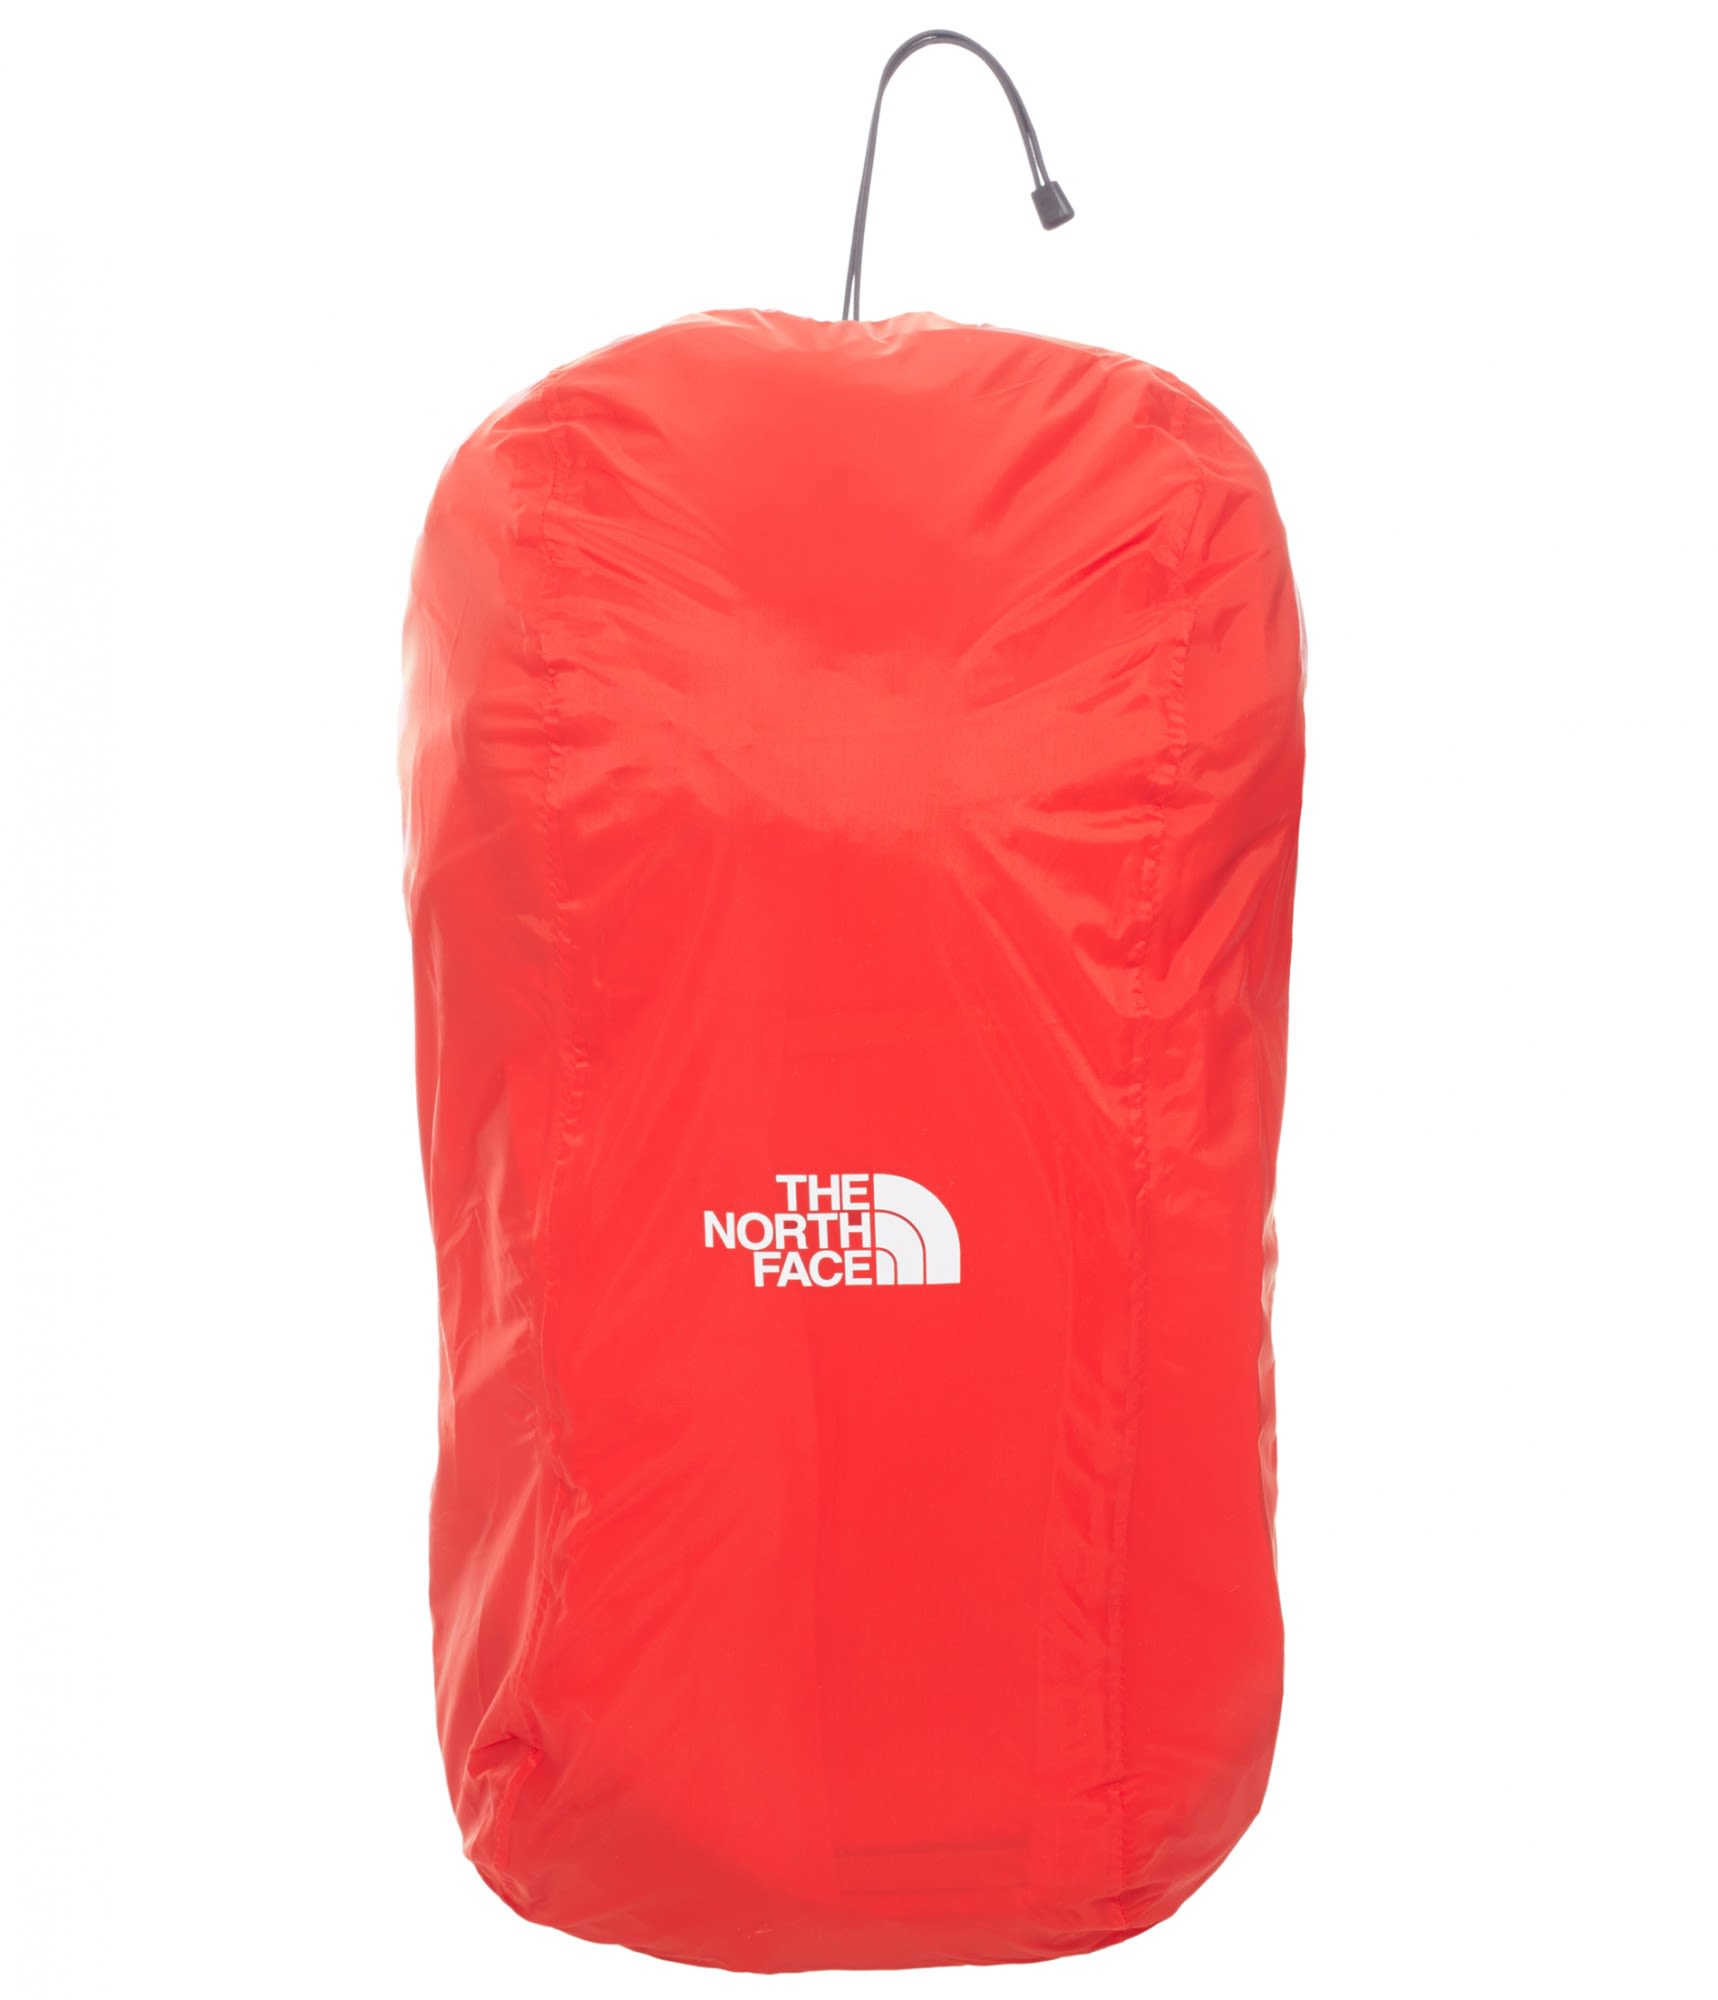 The North Face Pack Rain Cover Rot, 35-45l -Farbe TNF Red, 35-45l